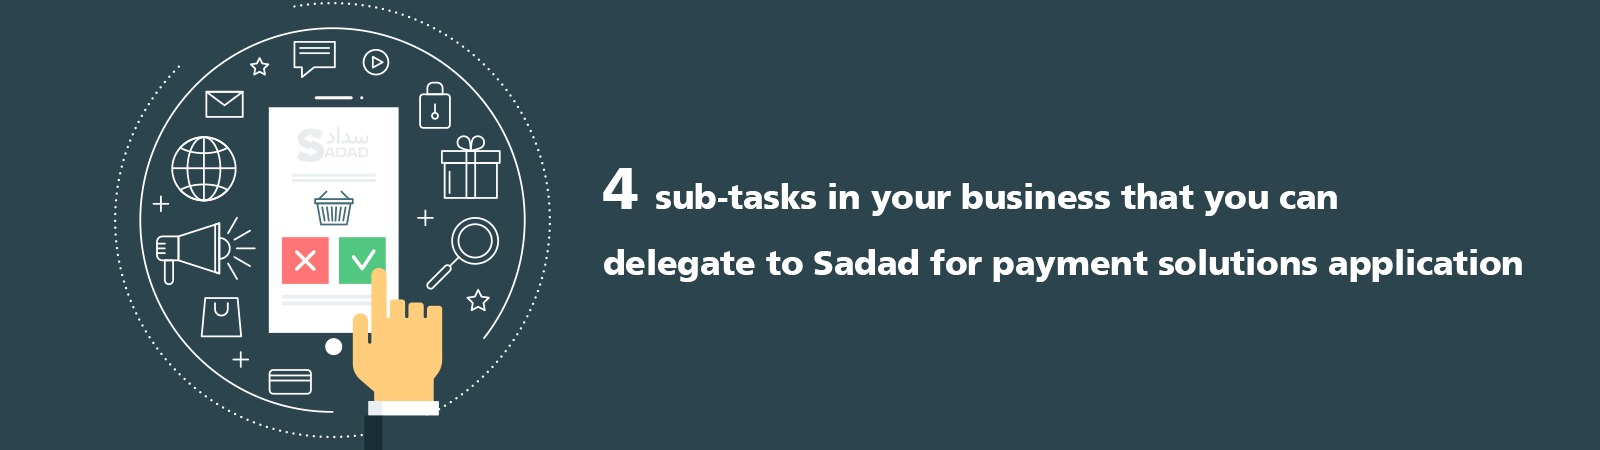 4 sub-tasks in your business that you can delegate to Sadad for payment solutions application.